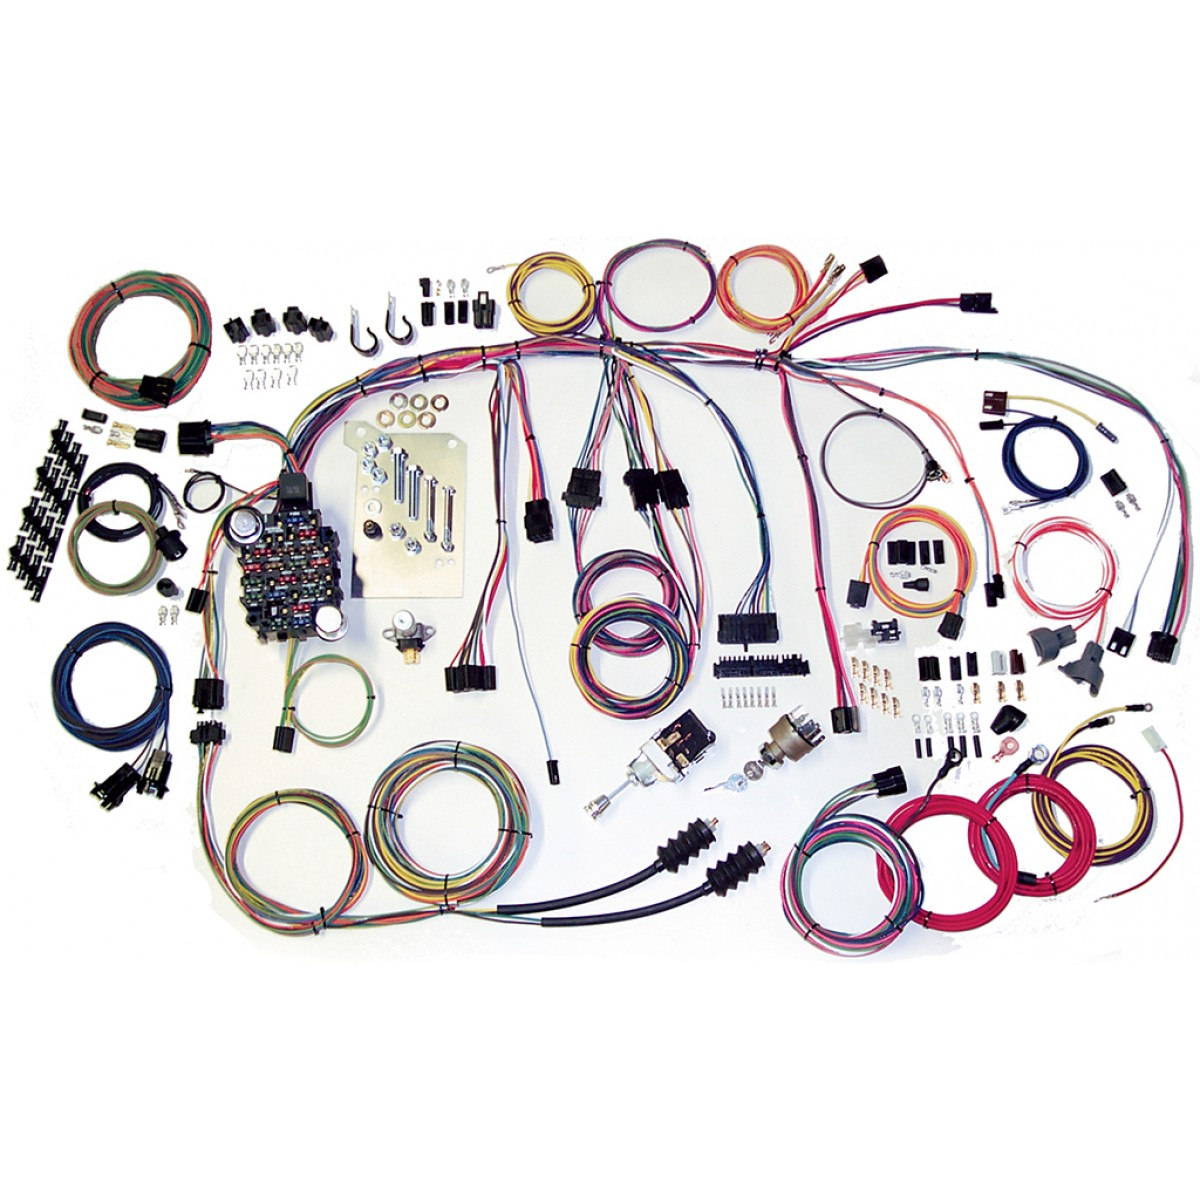 1966 c10 wiring harness